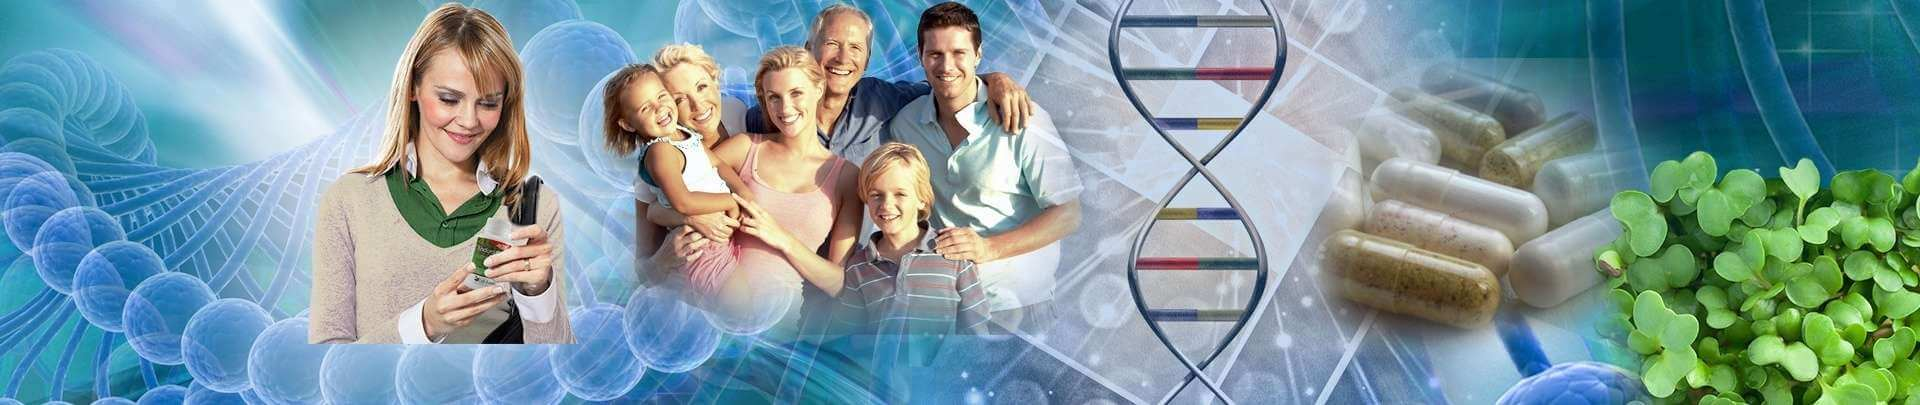 Nutragenomics – The Next Generation Nutraceuticals